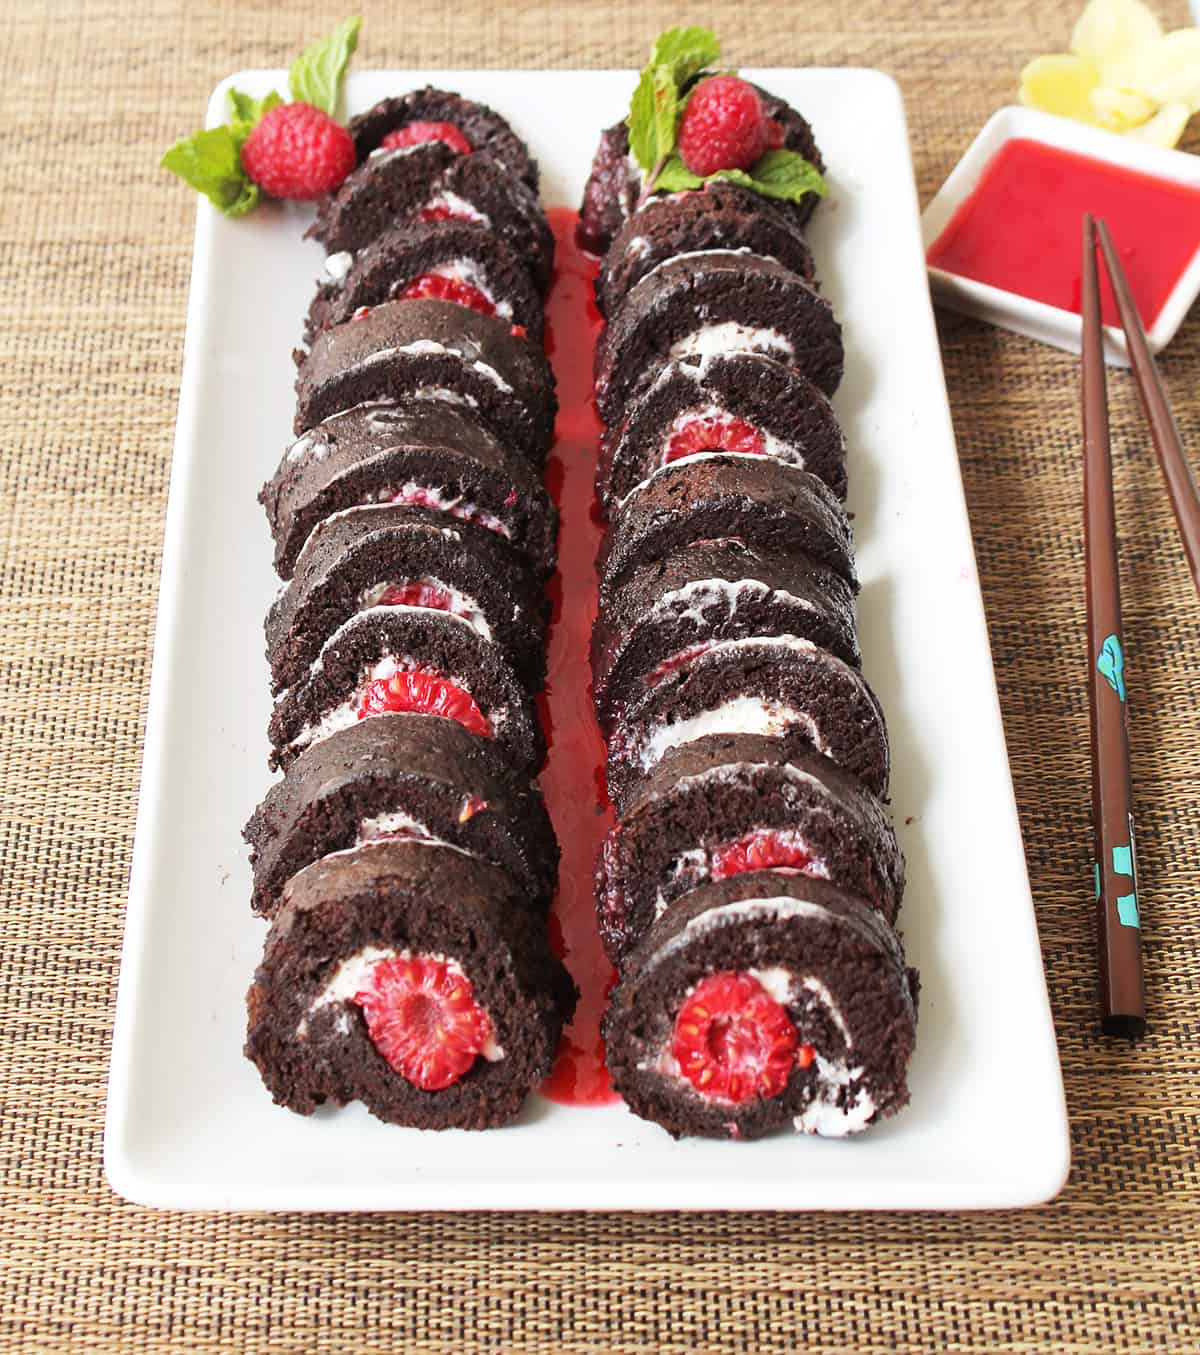 Two chocolate raspberry sushi rolls on white platter with raspberry sauce.